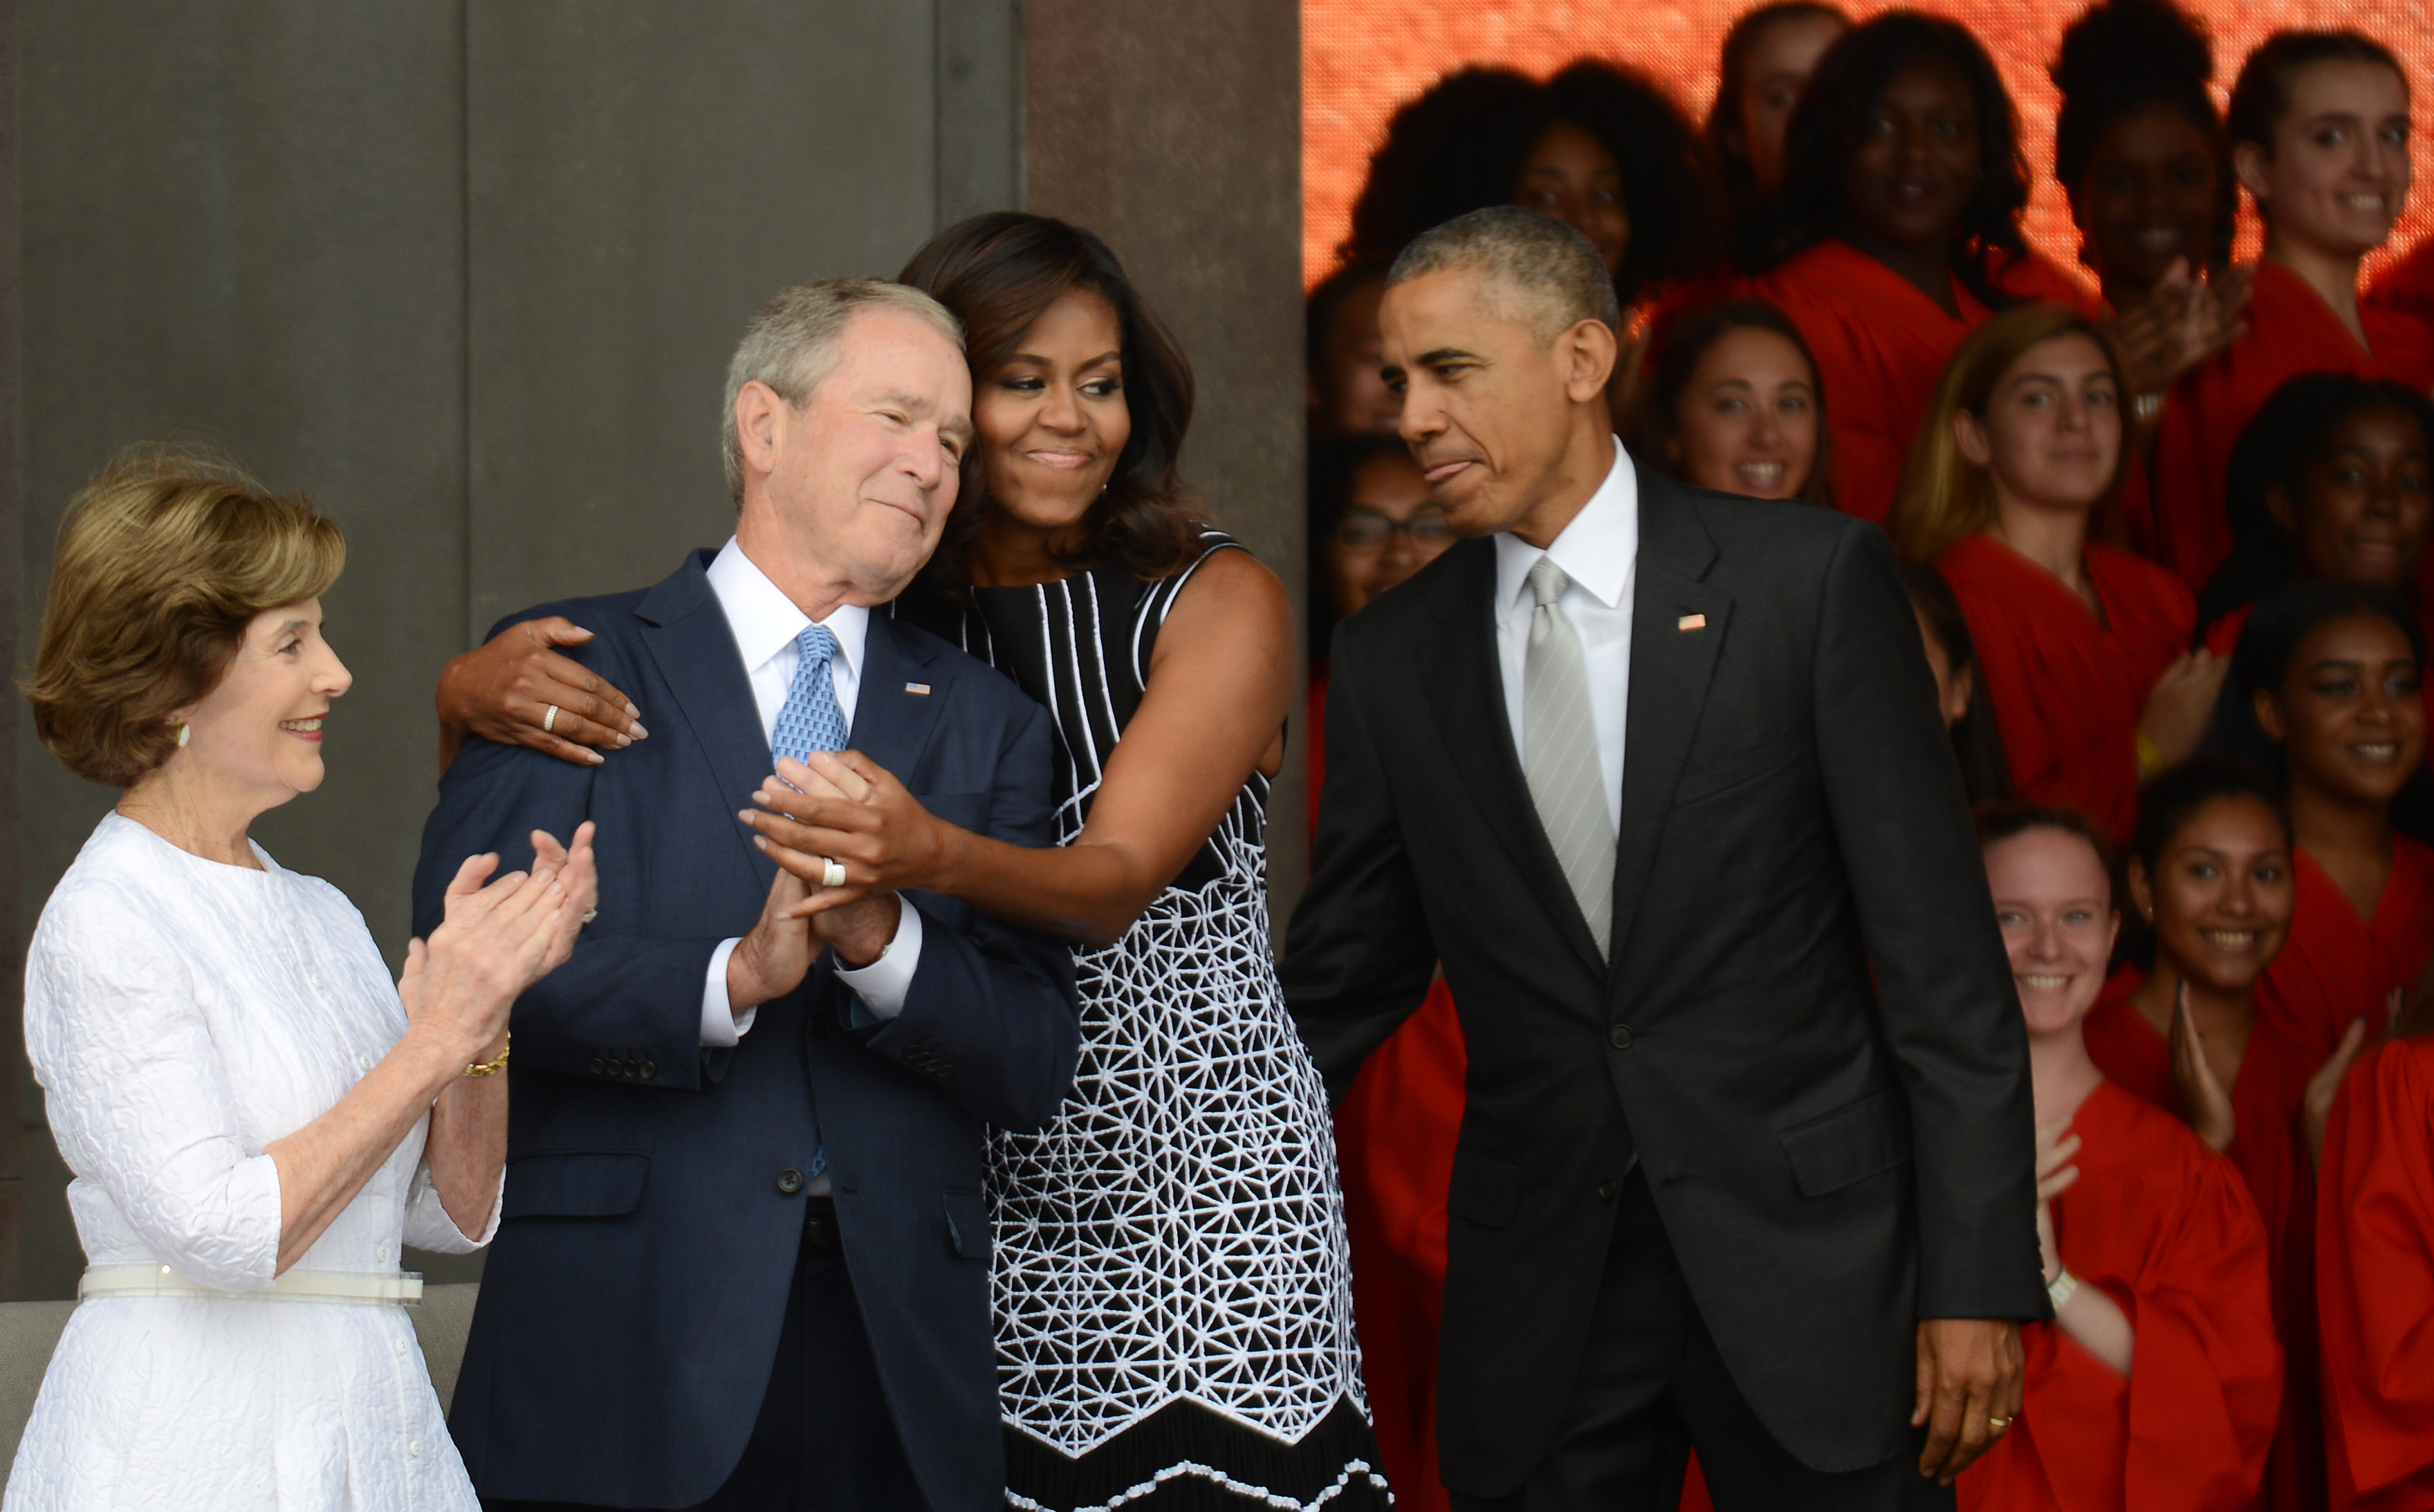 President Barack Obama watches first lady Michelle Obama embracing former president George Bush, accompanied by his wife, former first lady Laura Bush, while participating in the dedication of the National Museum of African American History and Culture September 24, 2016 in Washington, DC.